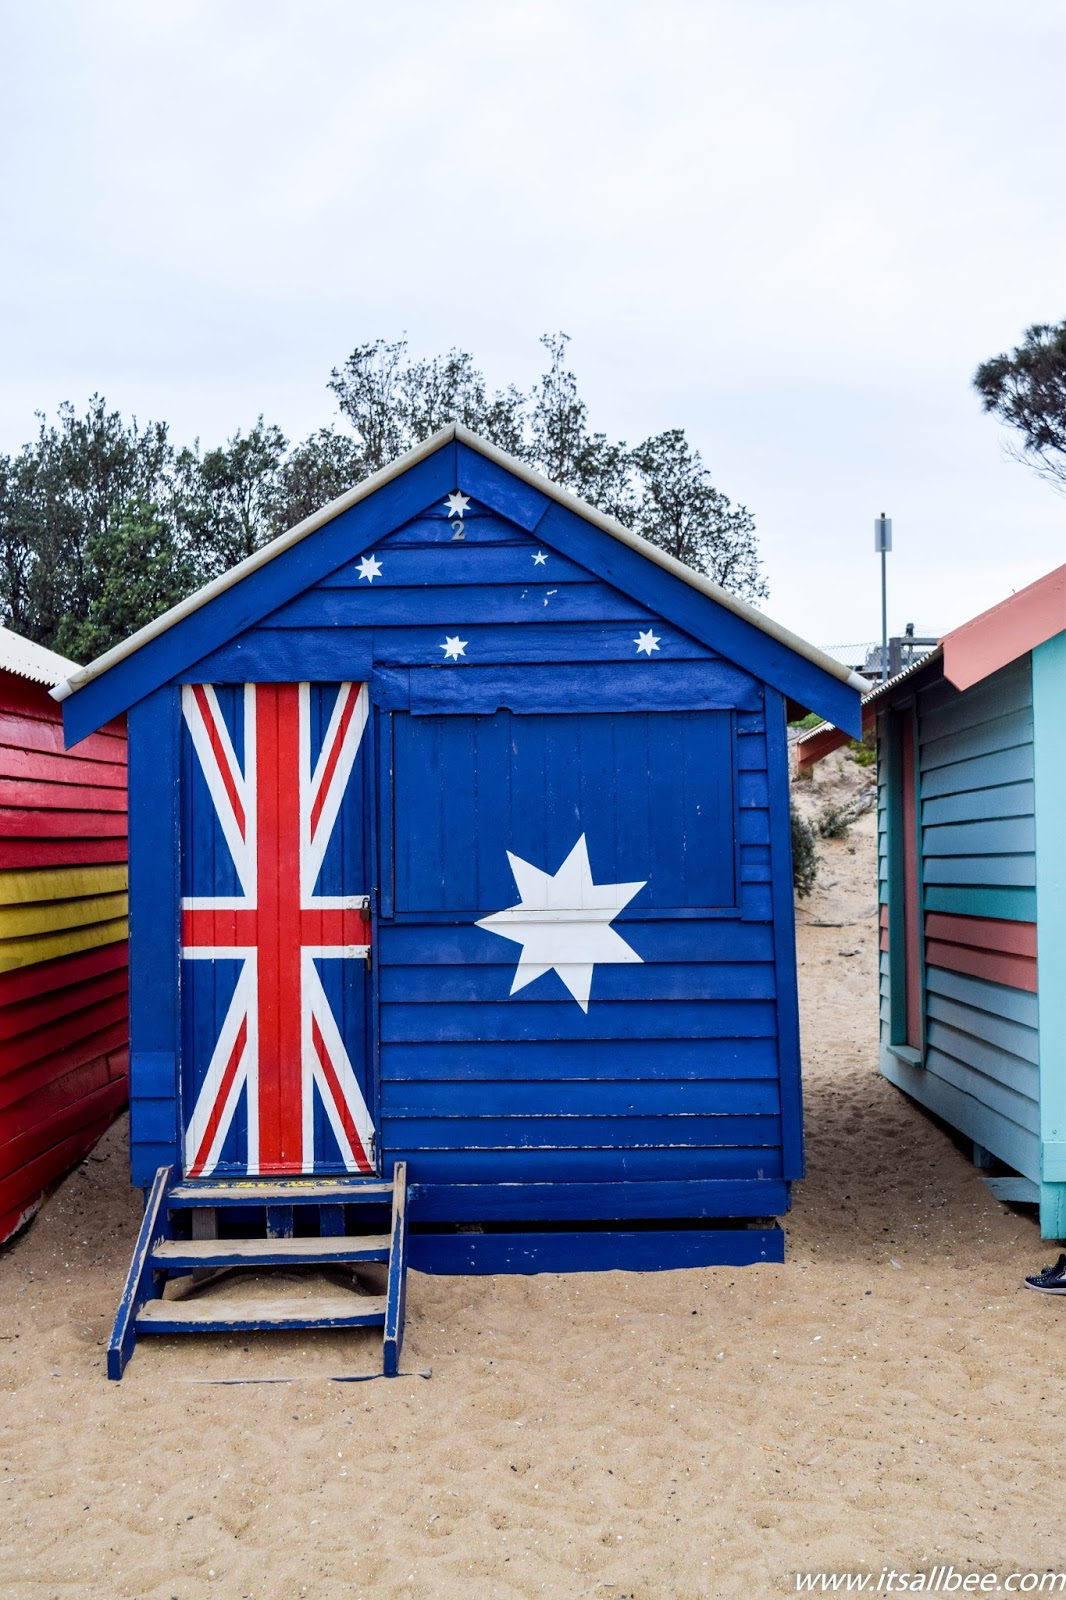 How To Get To Brighton Beach Melbourne's Bathing Boxes Beach #itsallbee #australia #traveltips #beaches #ocean #vacation #takemethere #beachlife